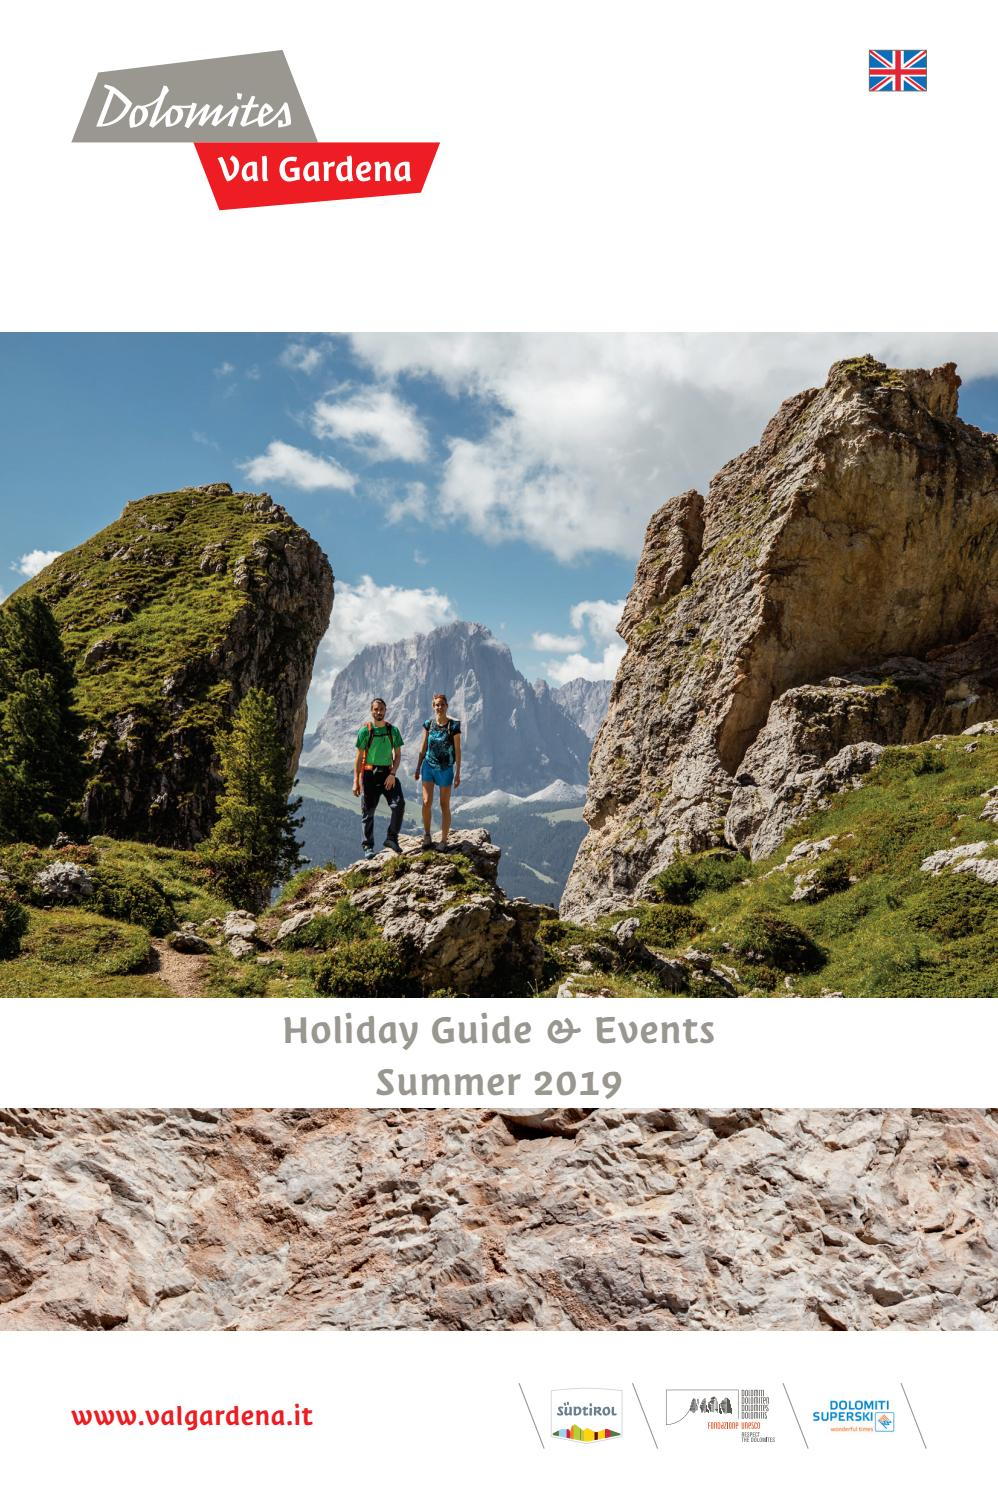 Holiday Guide Events Summer 2019 By Dolomites Val